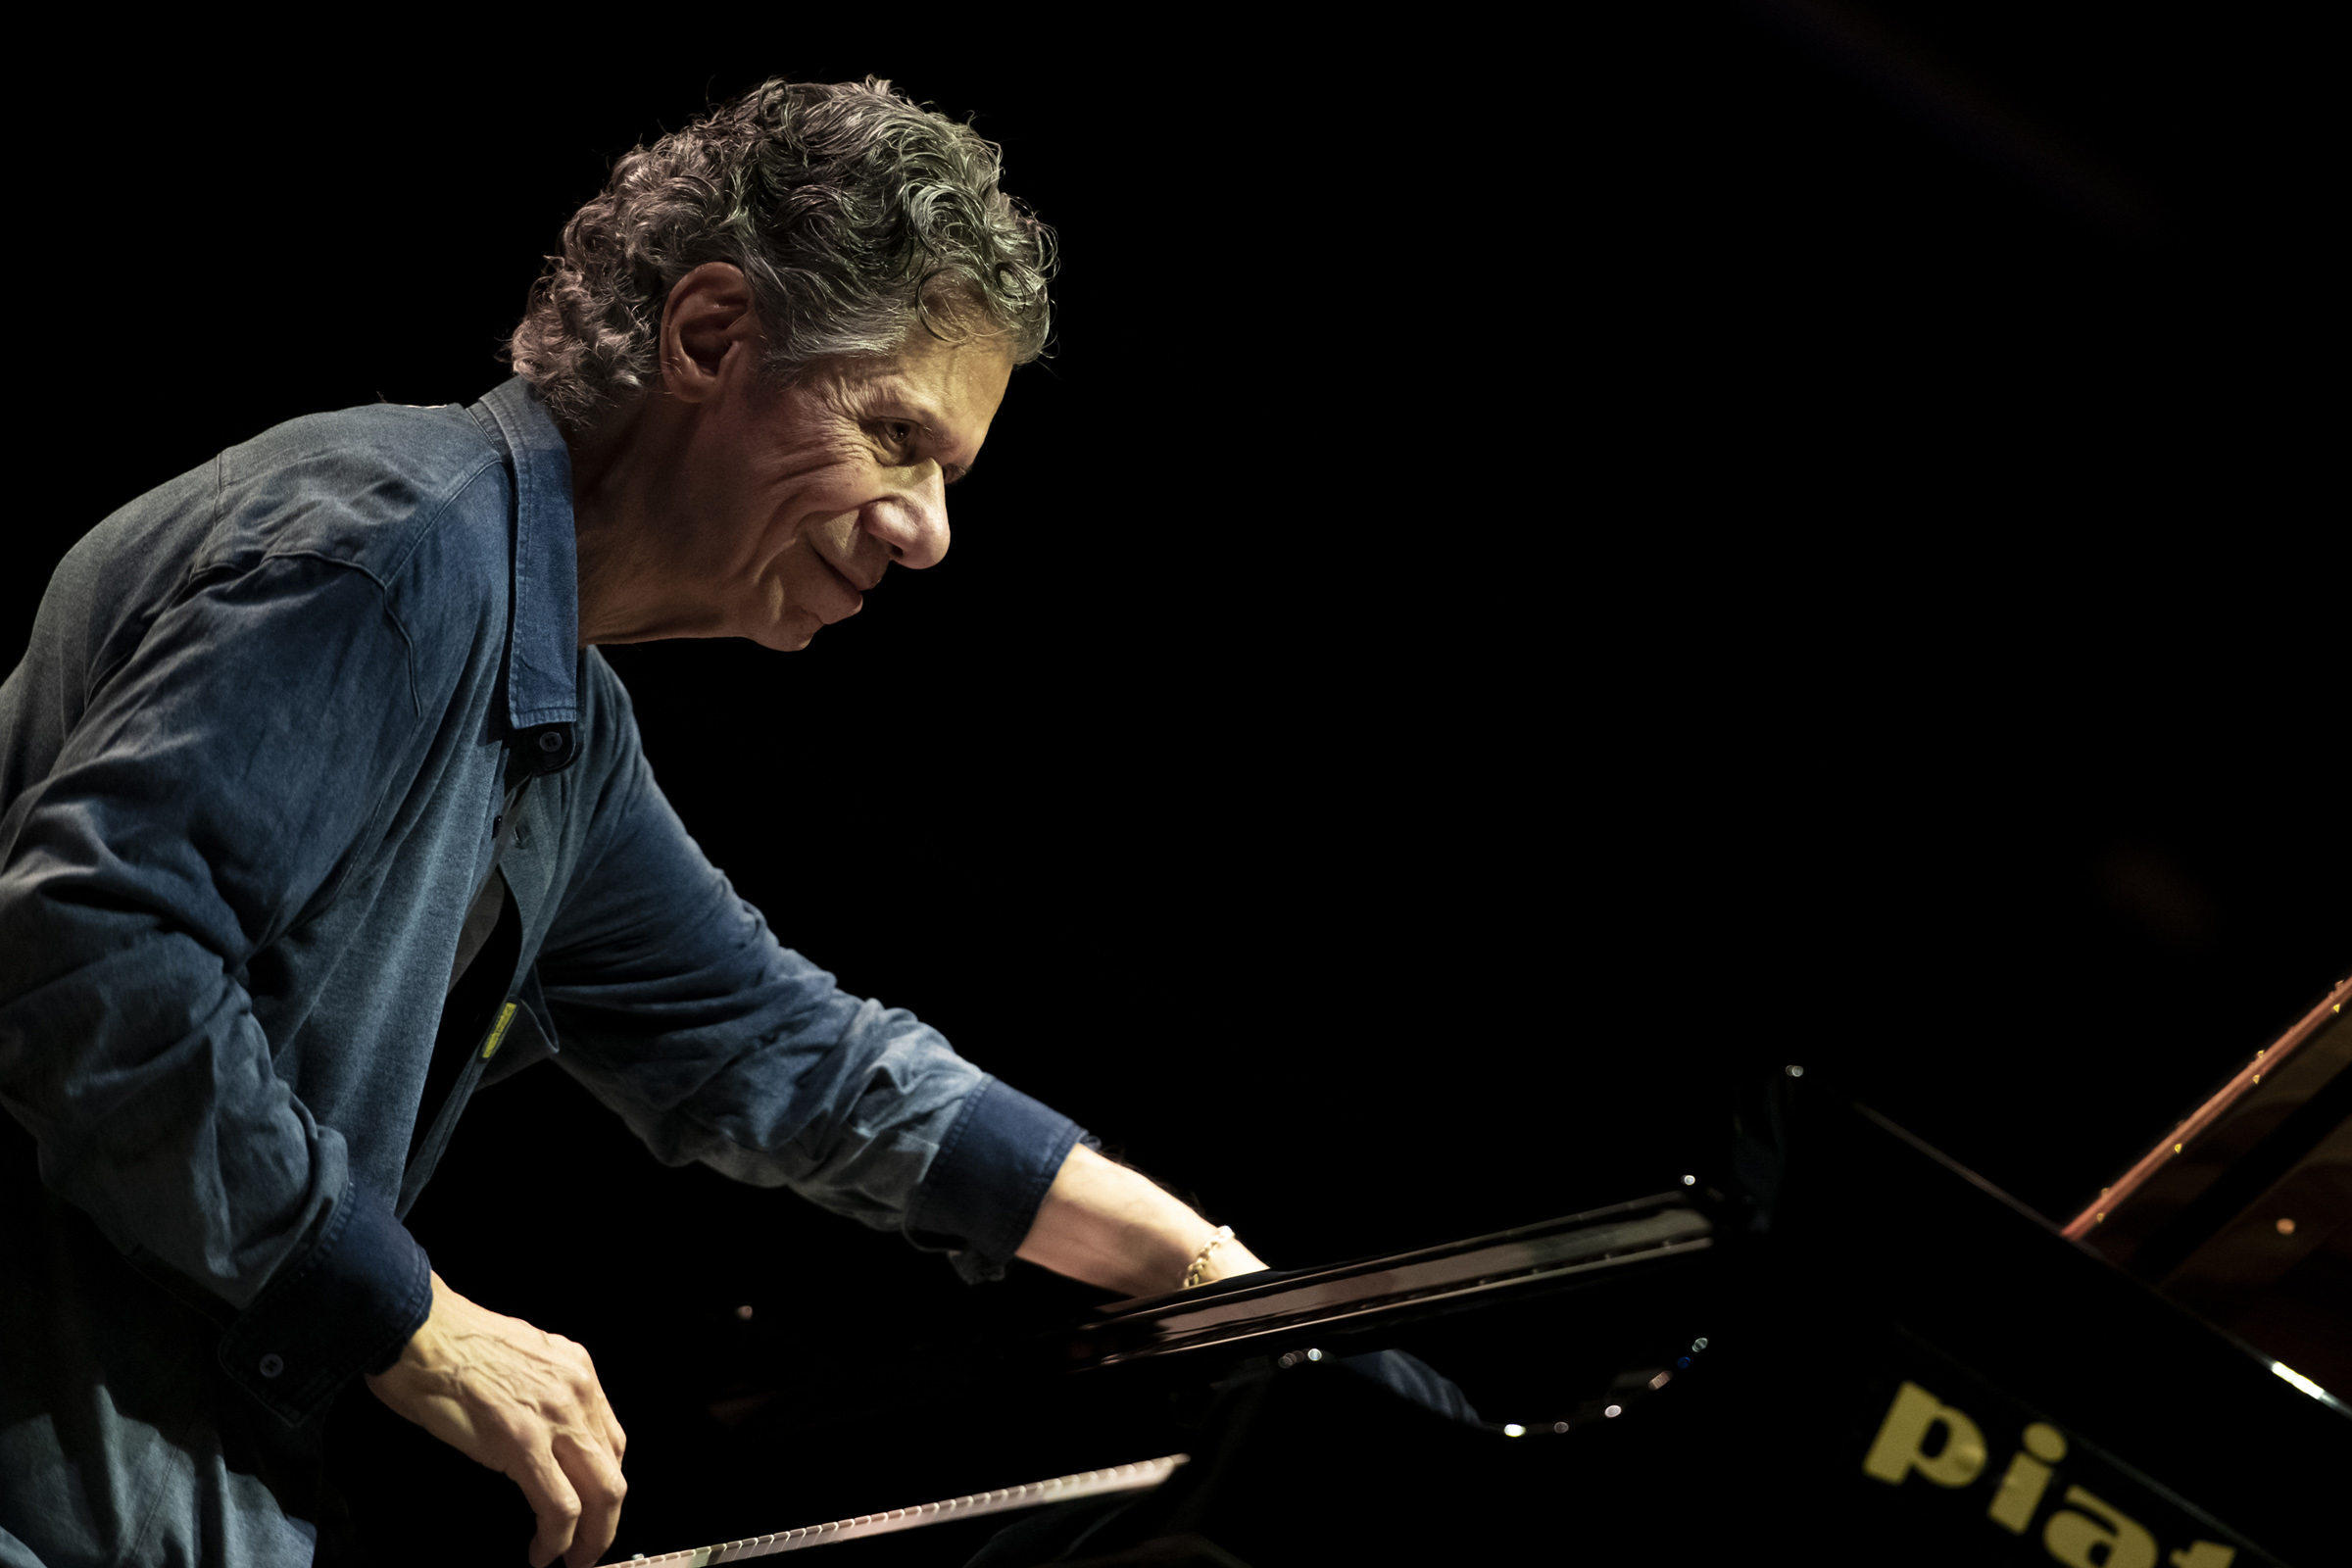 American piano player Chick Corea performs live during OGR Jazz Club  in Turin, Italy on Nov. 9, 2018.